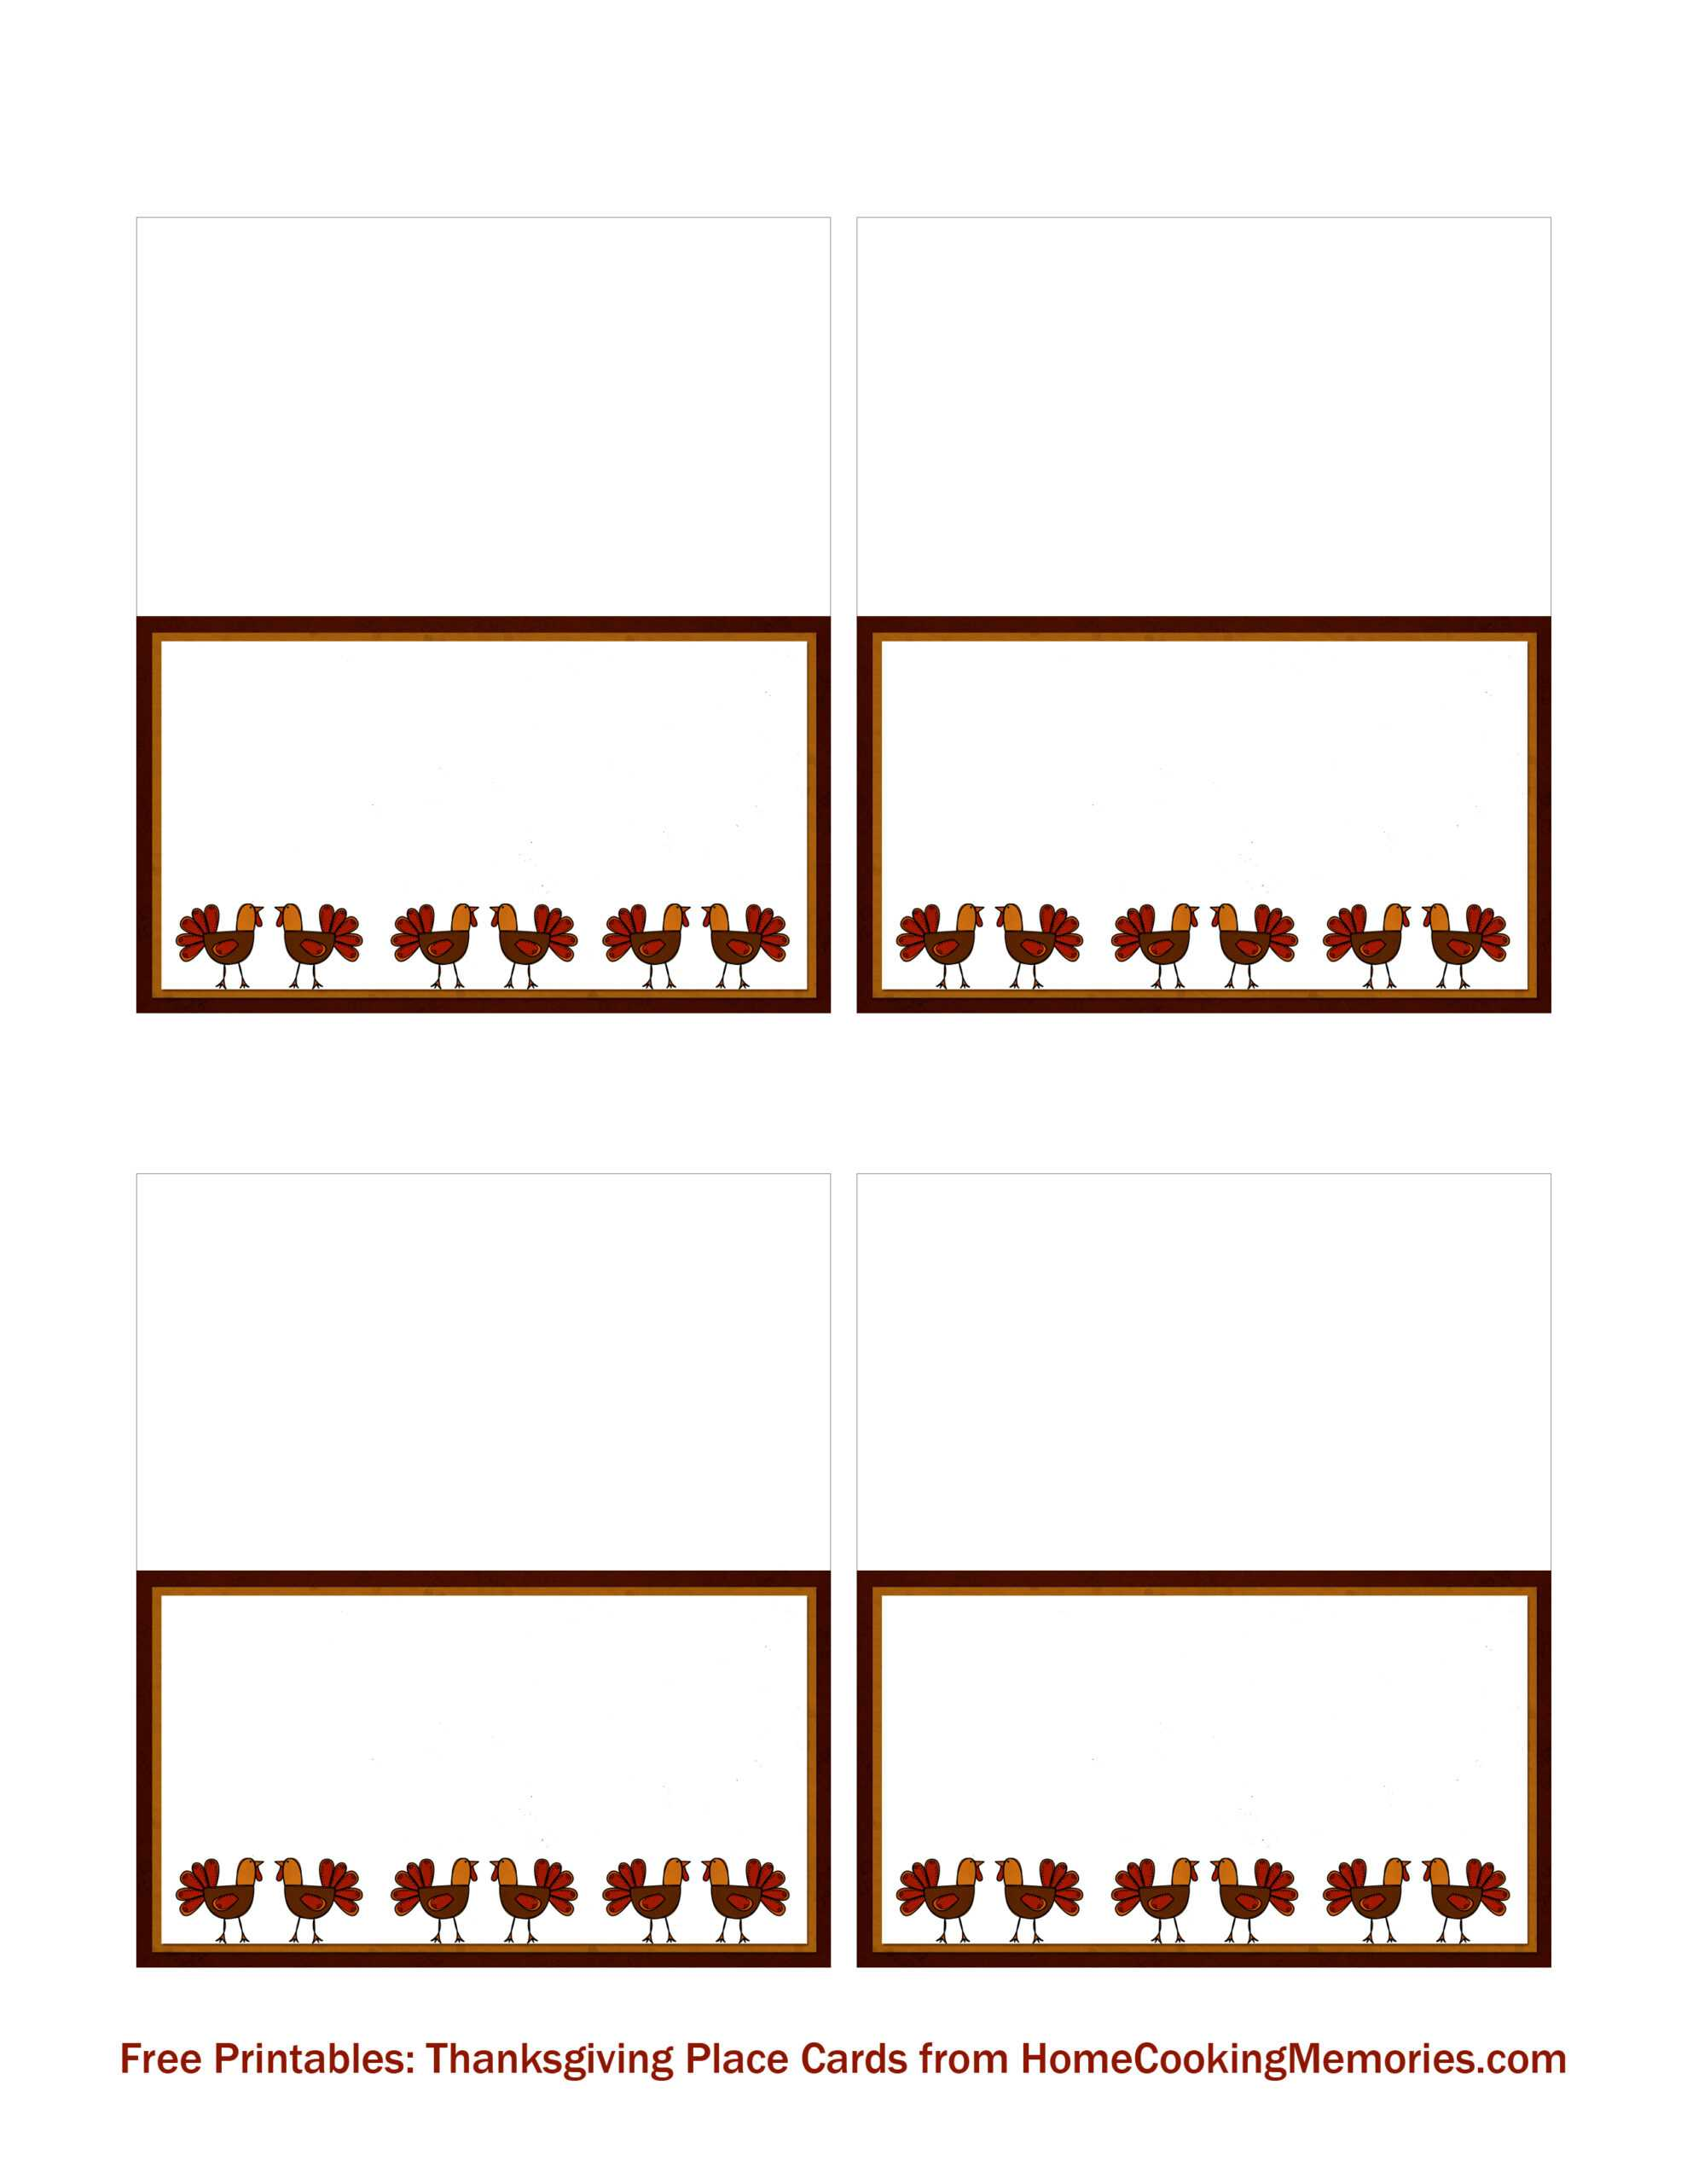 012 Frees Thanksgiving Place Cards Home Cooking Intended For Inside Thanksgiving Place Cards Template